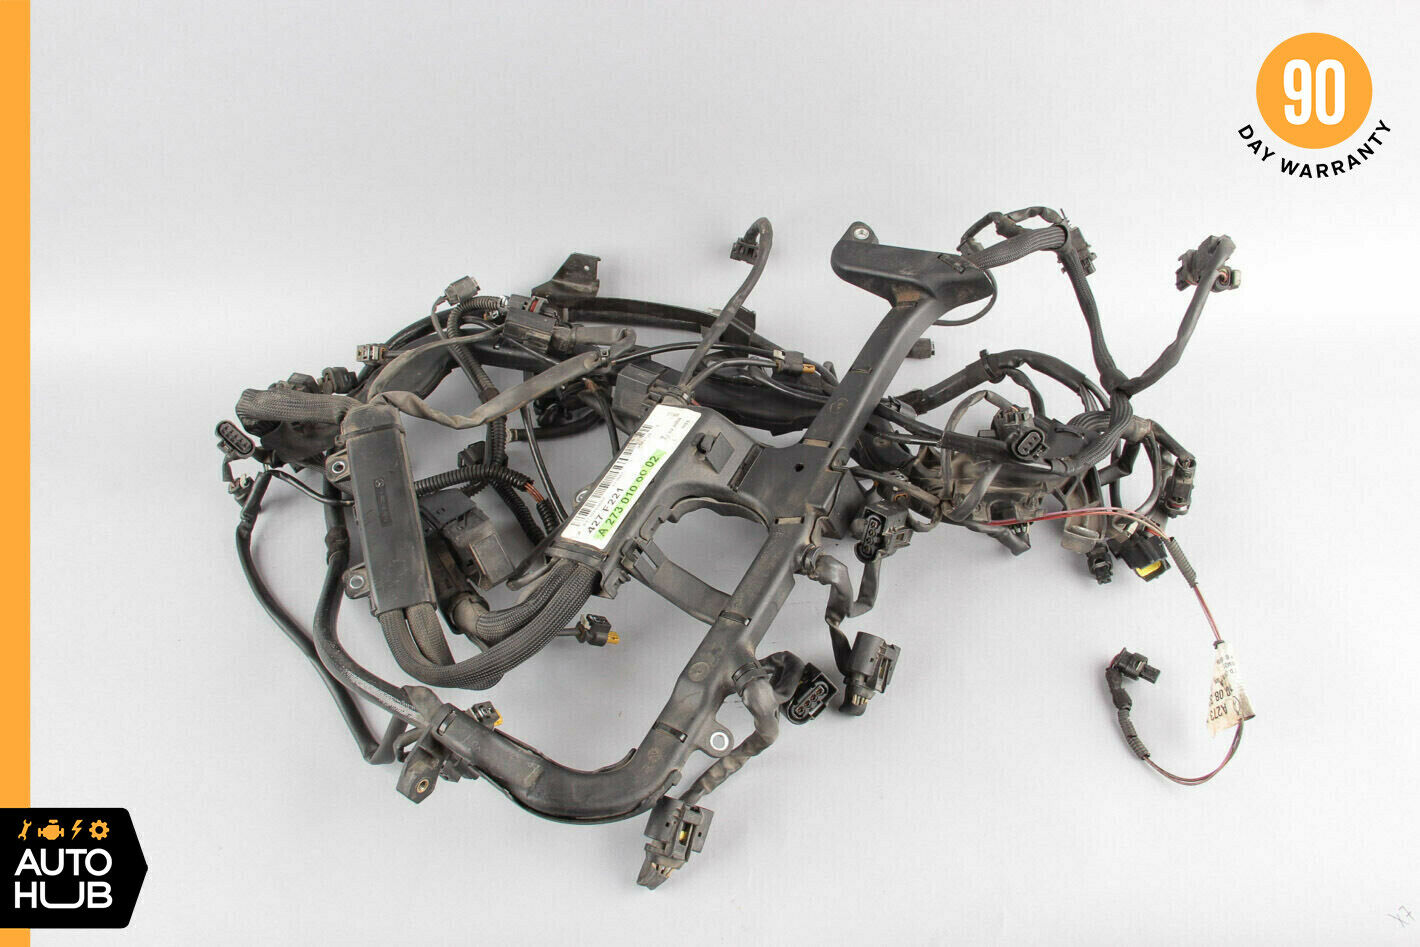 07-11 Mercedes W221 S550 CL550 Engine Motor Wiring Harness 5.5L M273  2730100002 1 of 11Only 2 available See More